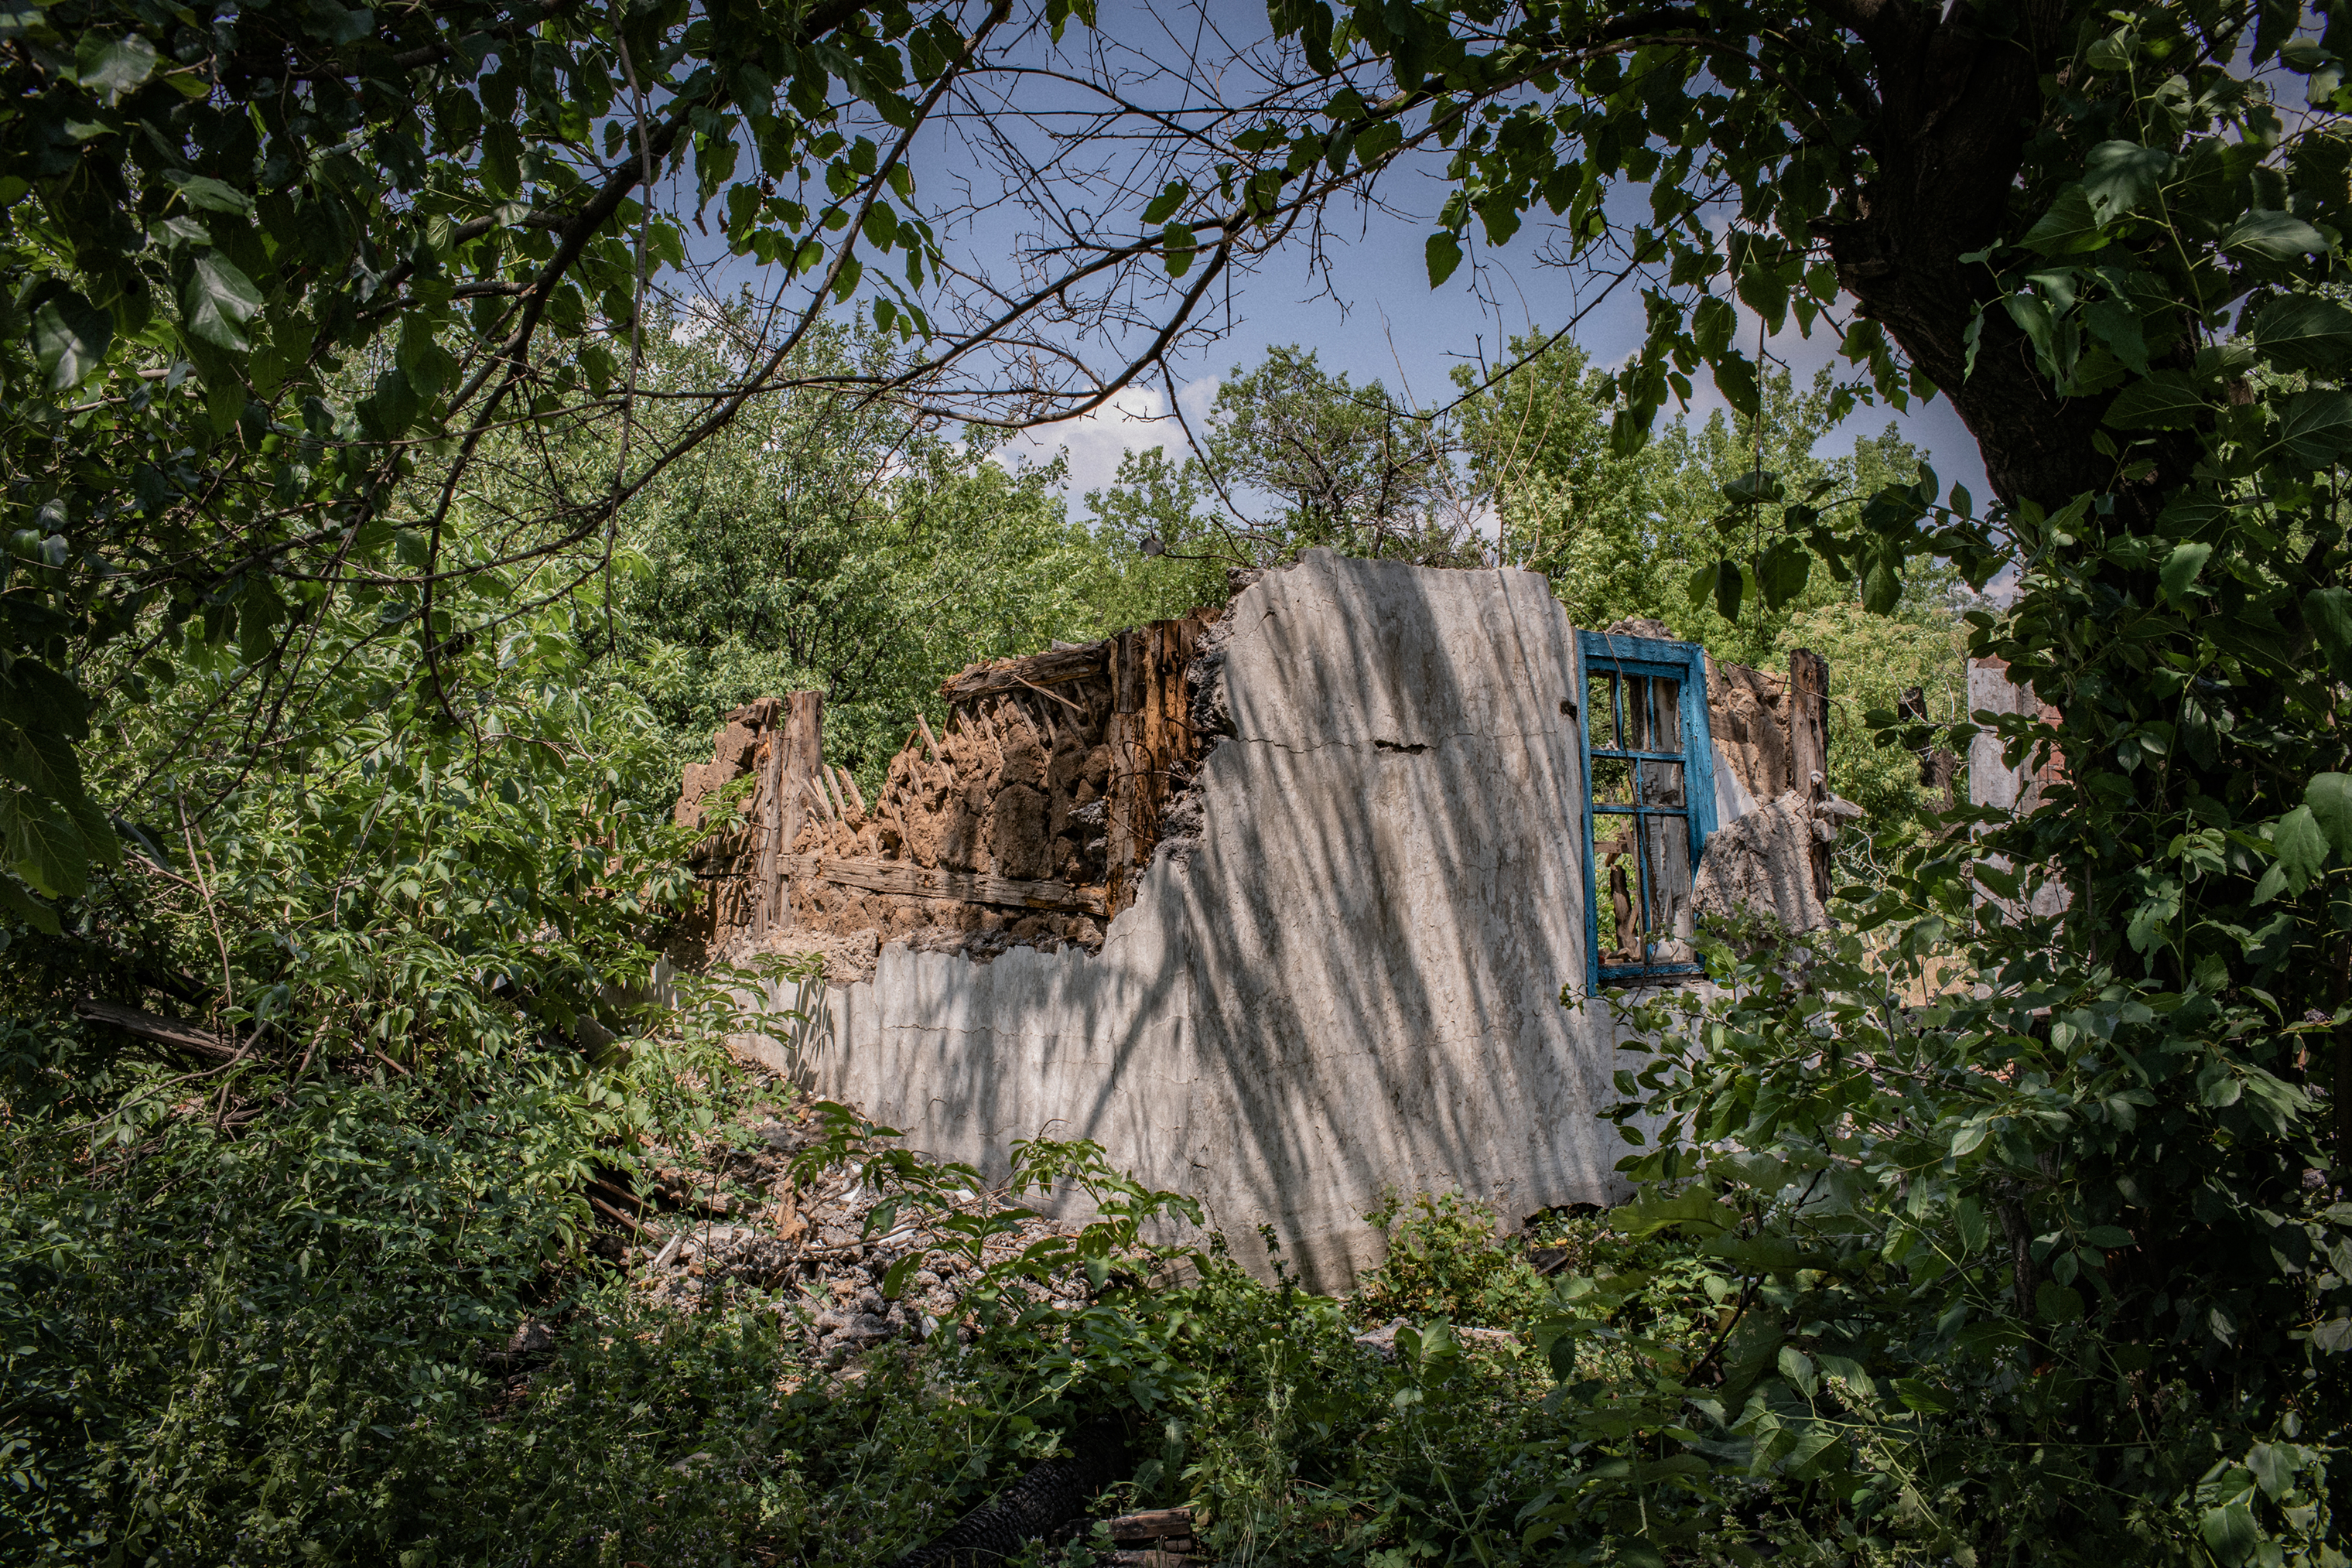 A house that was destroyed by shelling in Yuzhnaya, a frontline area near Toretsk. It's easy for outsiders to see only broken walls, collapsed ceilings and a mess of the mutilated furniture and wallpaper. Yet locals still see their homes, and carry stories about the lives they lived in them.